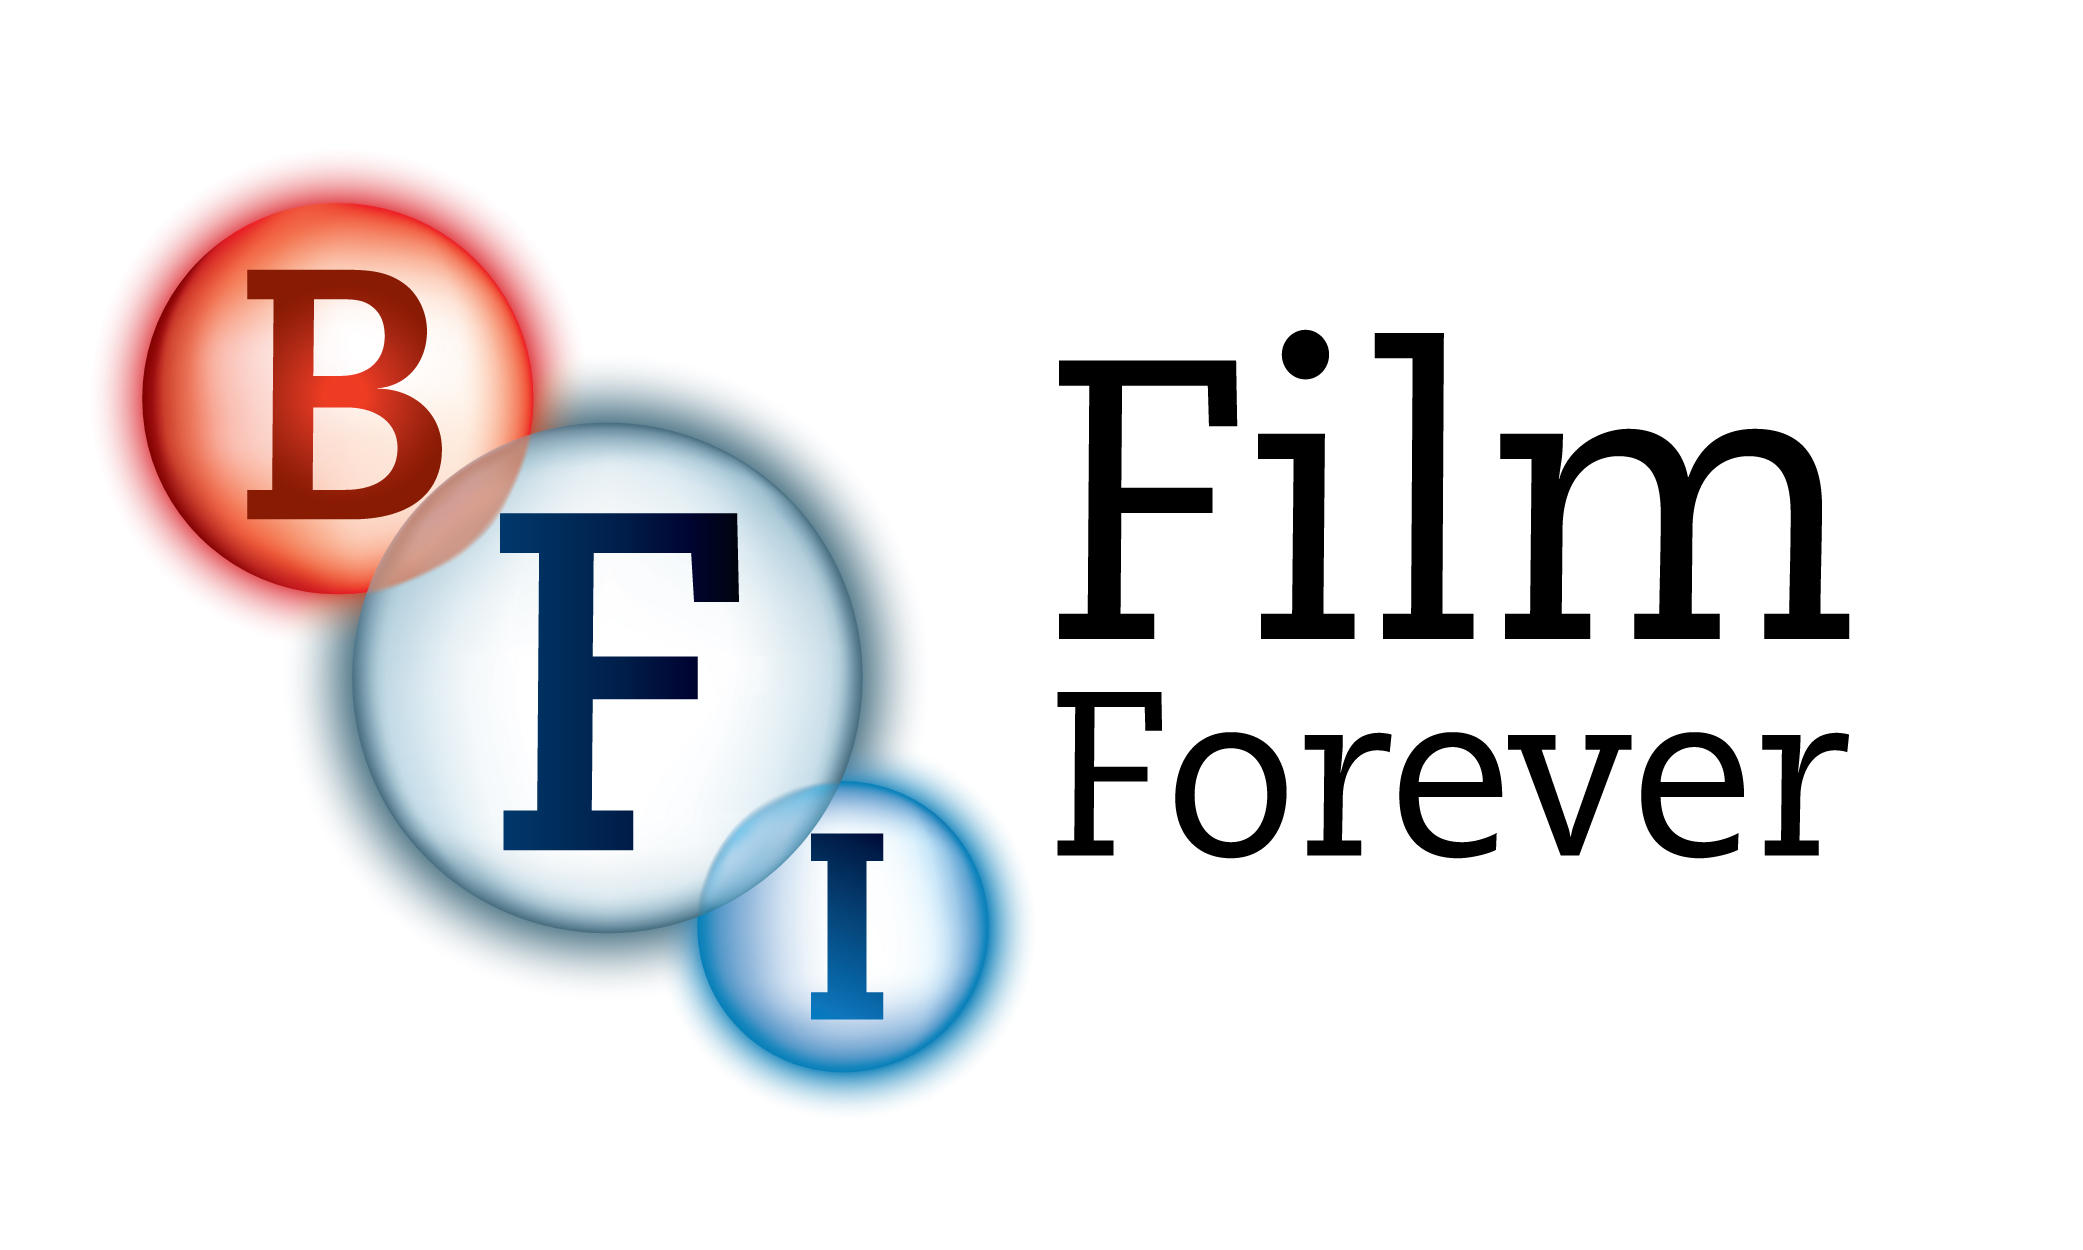 BFI Film Fund